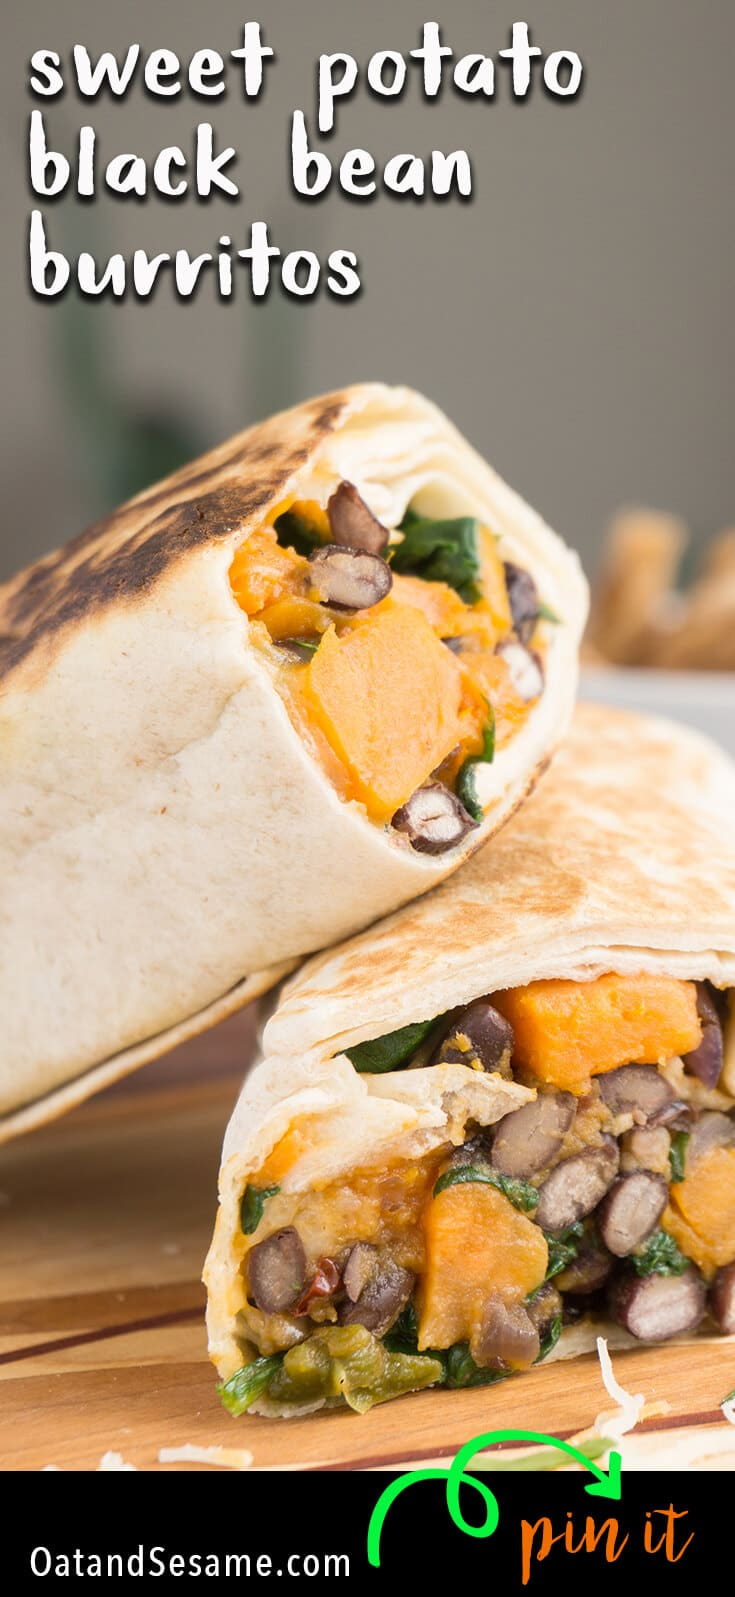 A BURRITO that everyone will love! Spinach, Sweet Potato, Black Beans tossed with a little chipotle and optional cheese. Freezable, Make Ahead and Perfect to tote to Lunch during the week! | #VEGETARIAN | #VEGAN | #MEXICAN | #BURRITO | MAKE AHEAD | #Recipes at OatandSesame.com